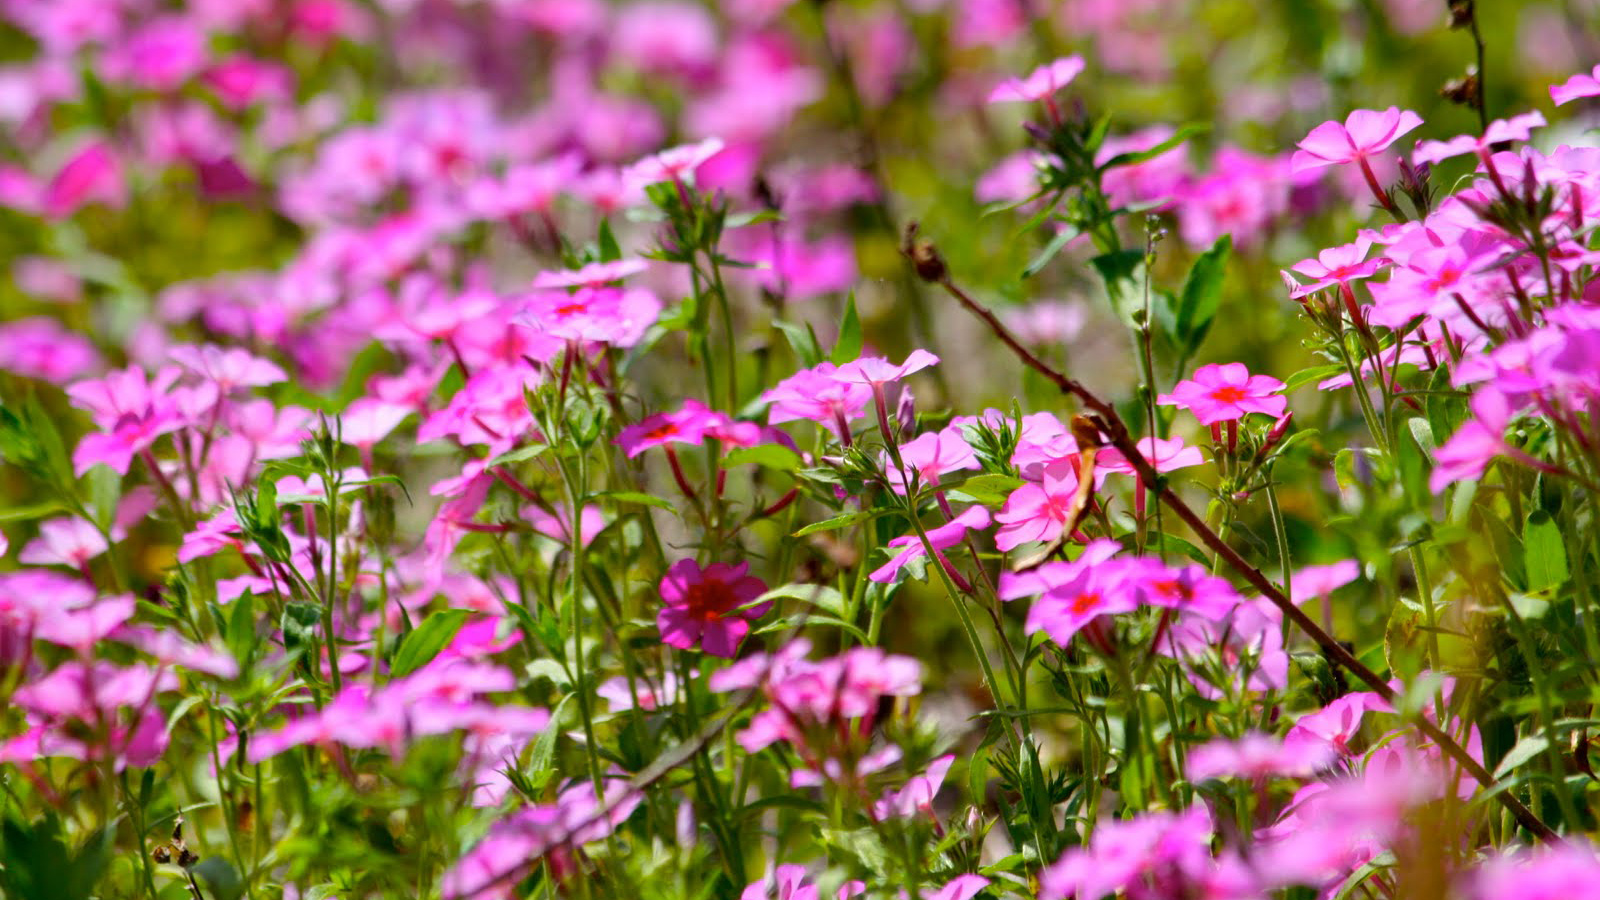 Bright pink downy phlox flowers in a field